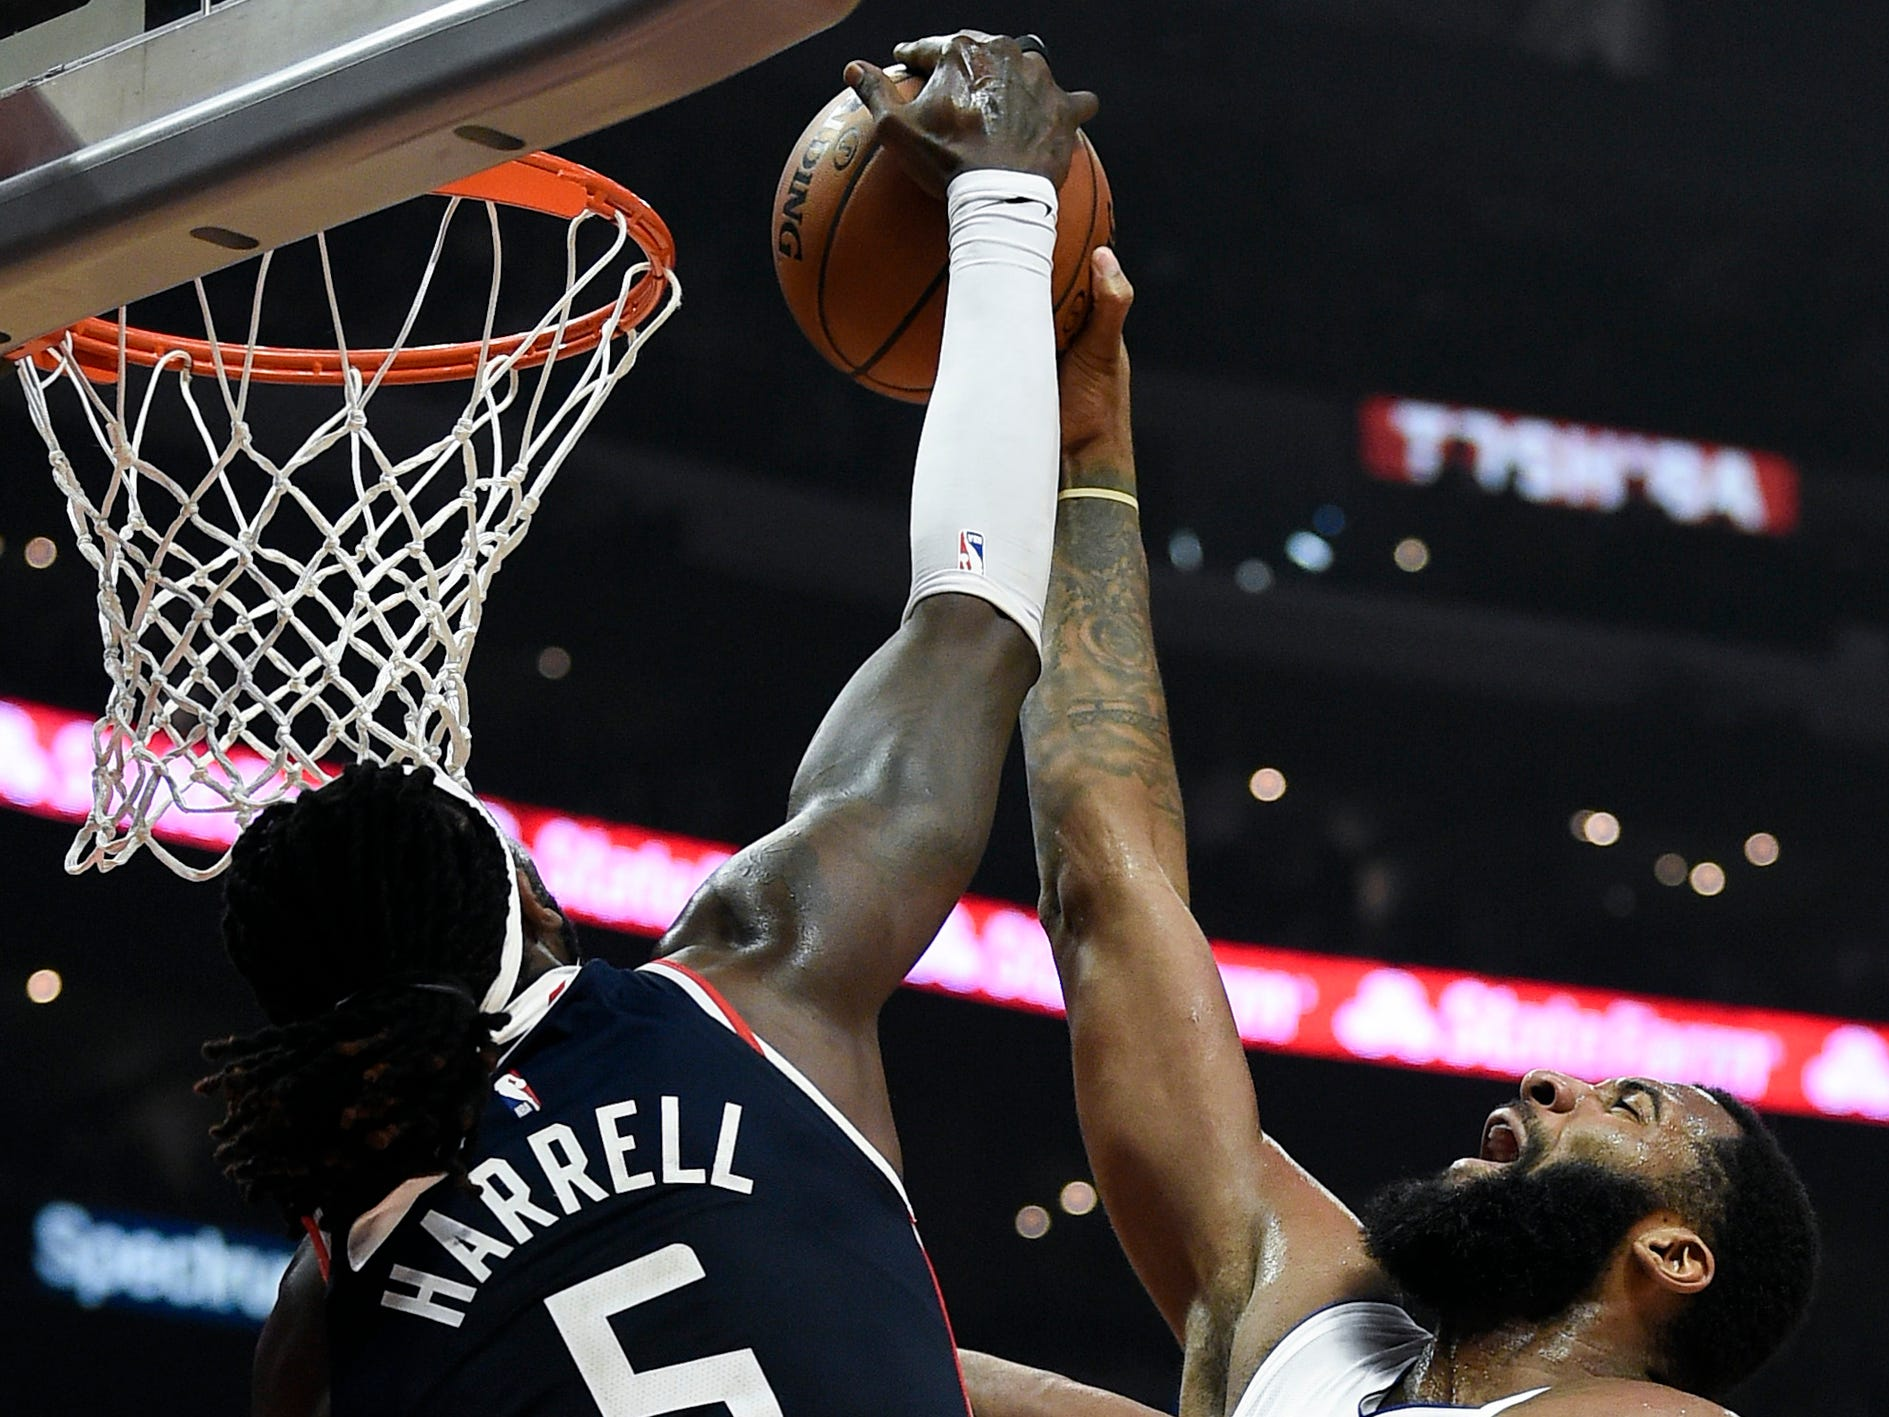 Clippers forward Montrezl Harrell blocks a shot by Pistons center Andre Drummond during the first half on Jan. 12, 2019, in Los Angeles.